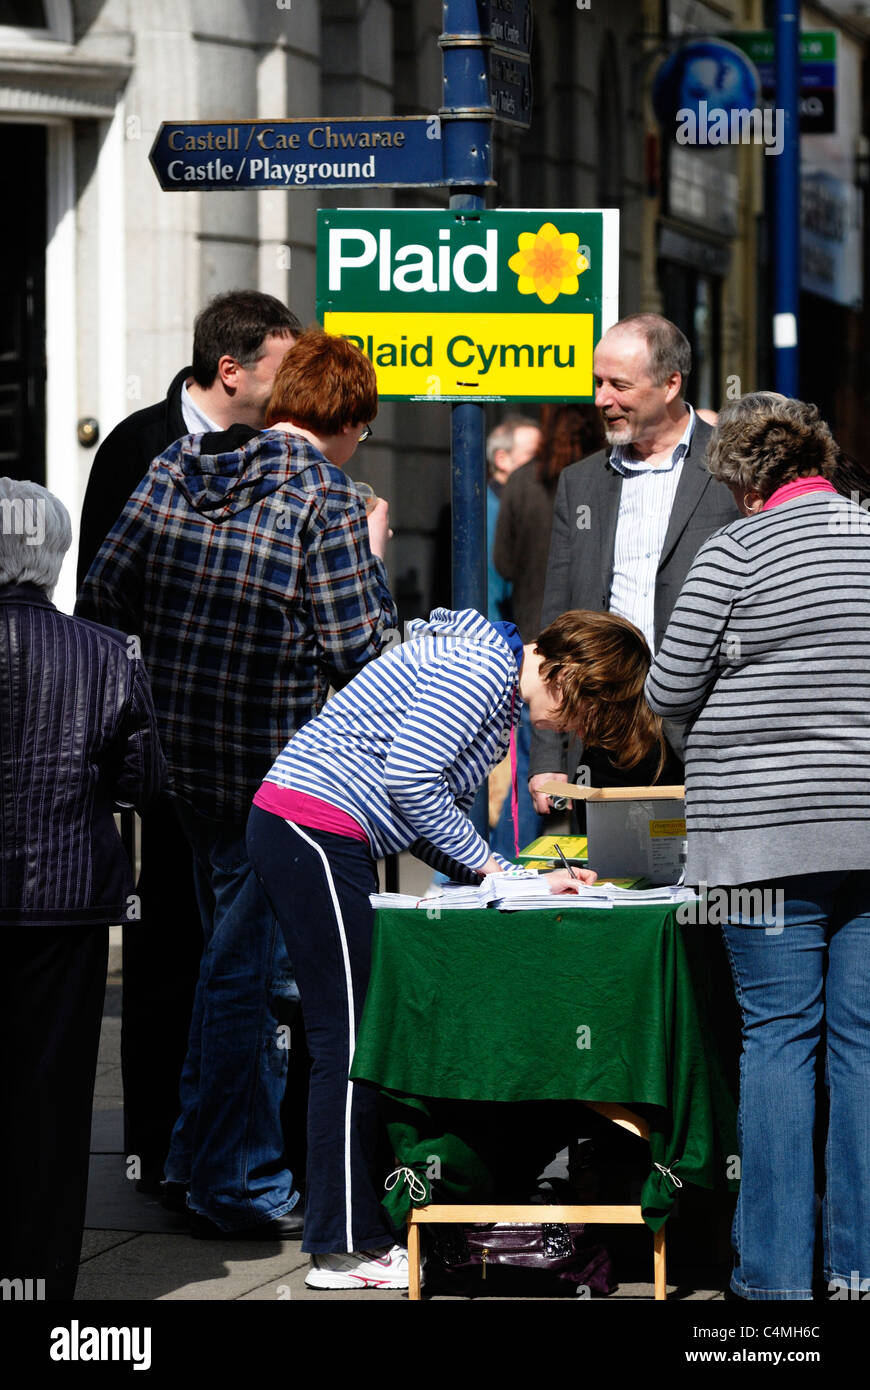 Stall promoting the political party, Plaid Cymru, Aberystwyth, Wales - Stock Image